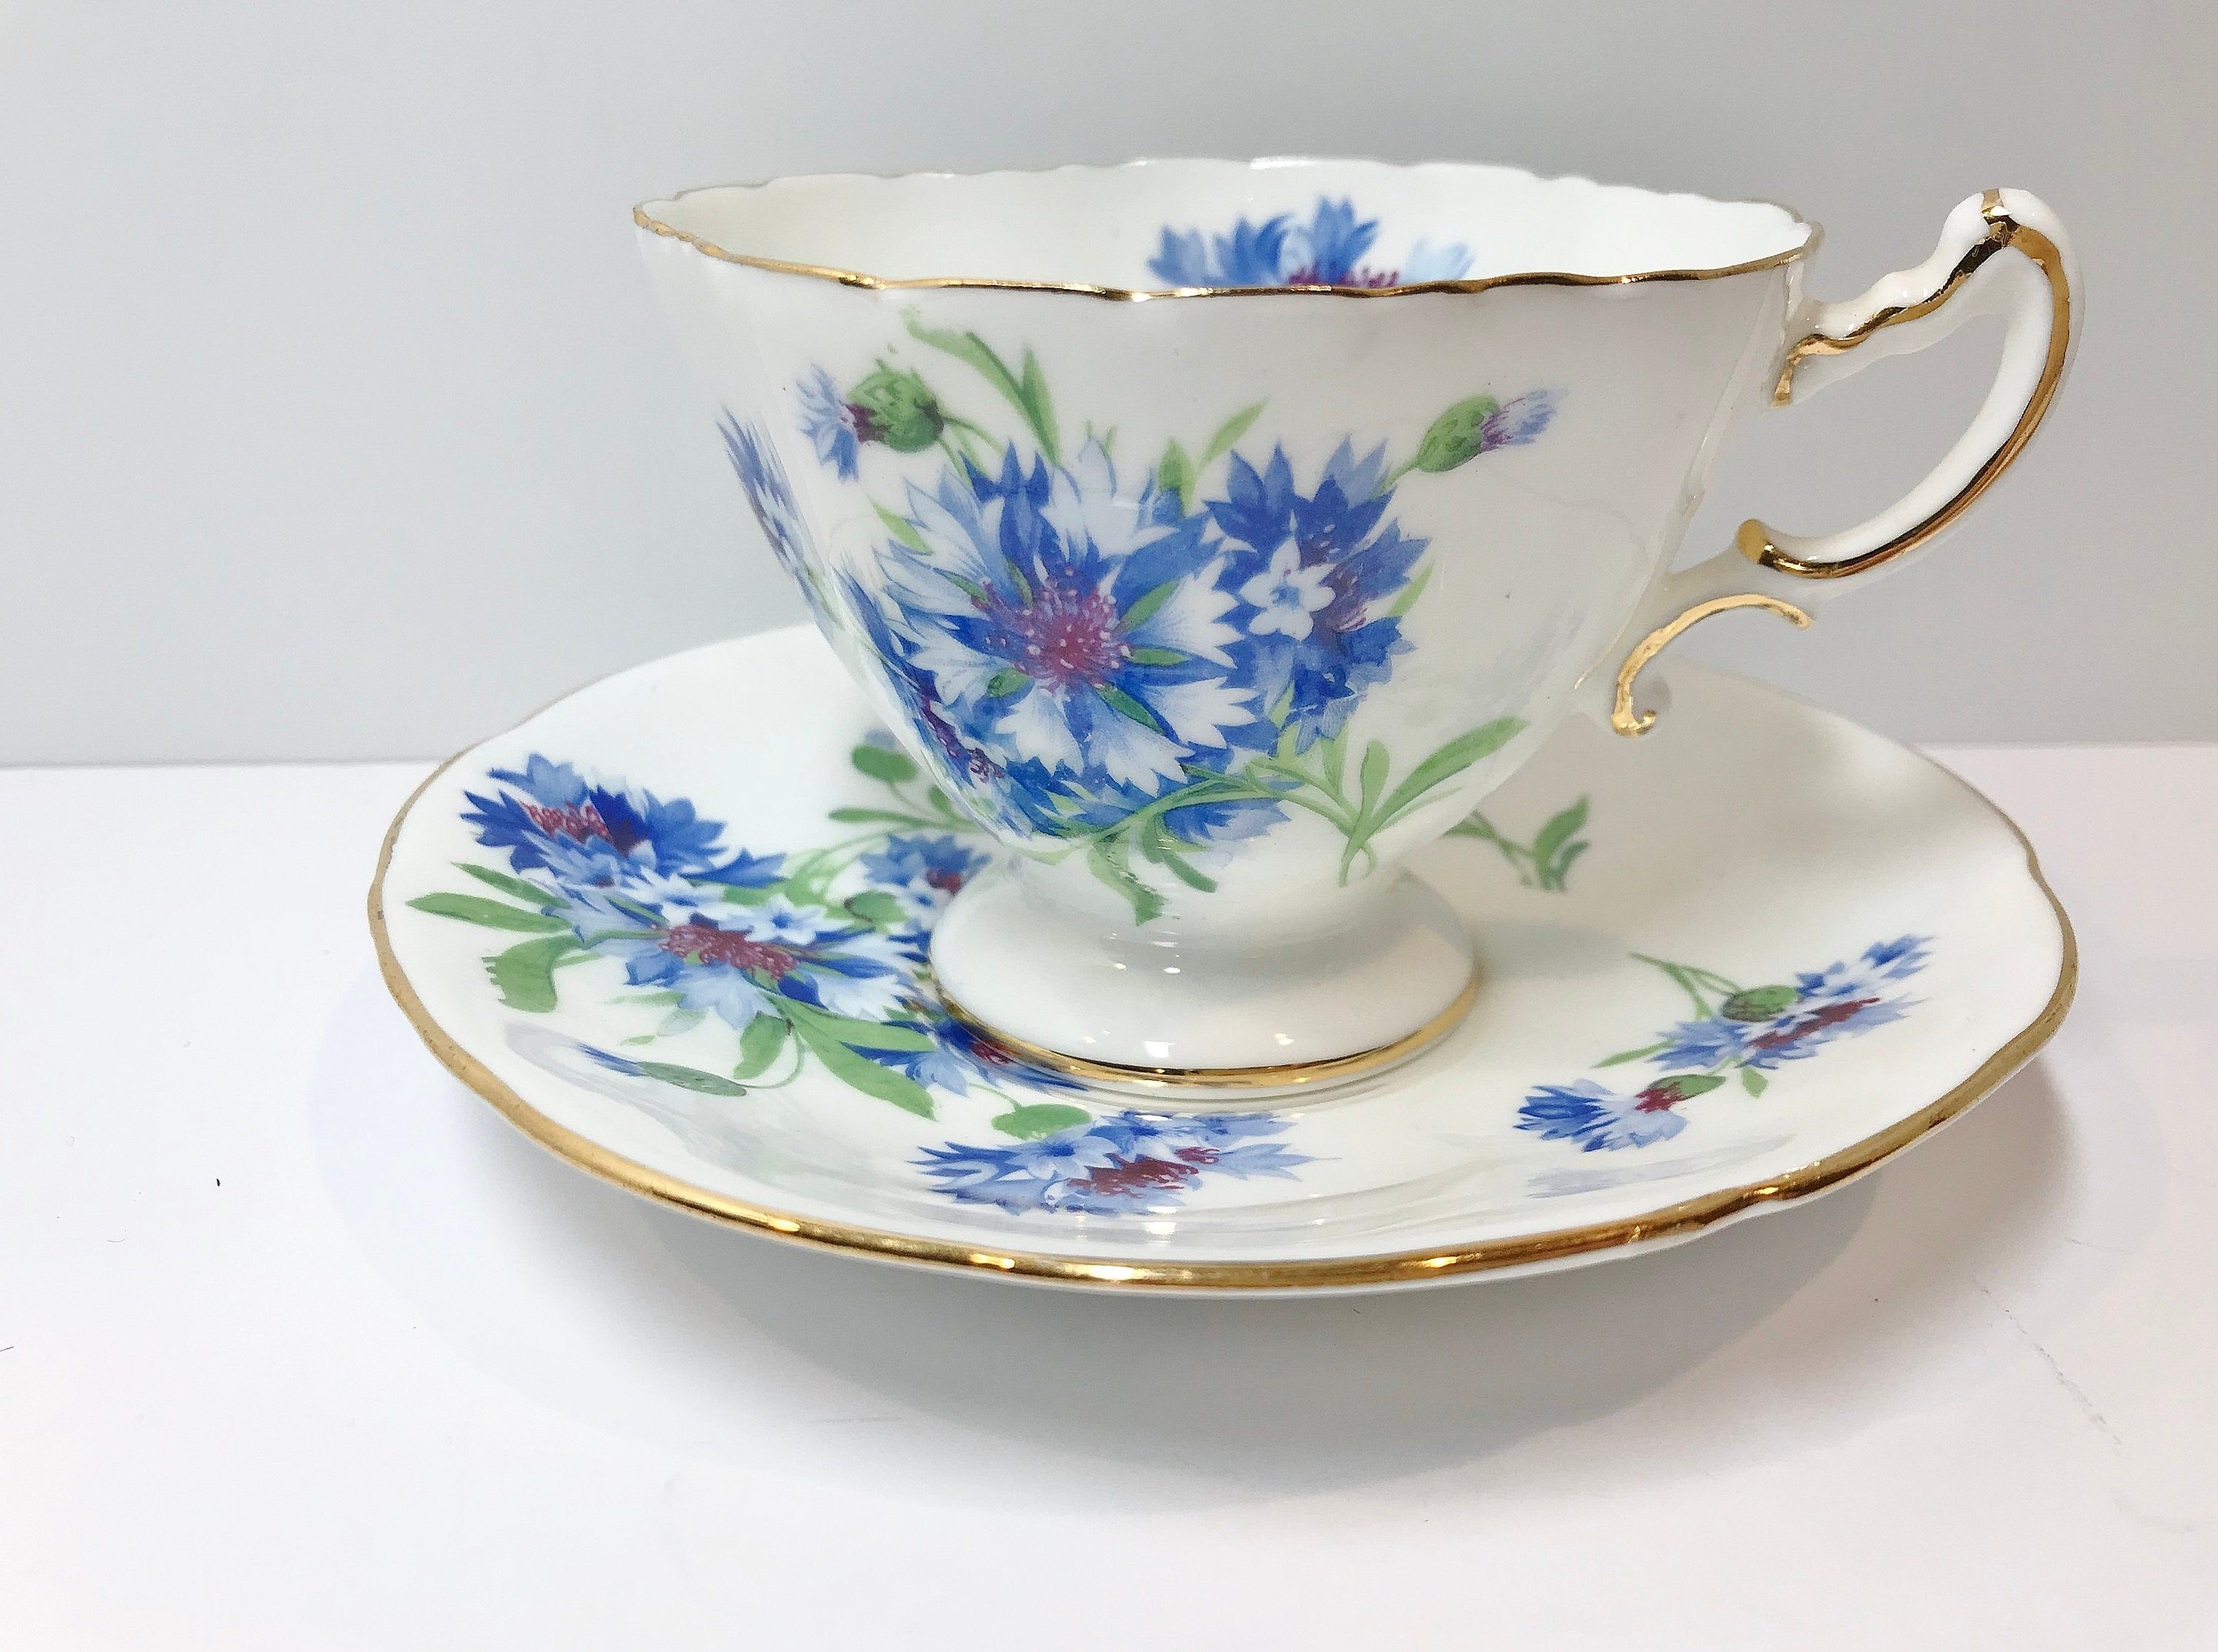 Romantic Hammersley Tea Cup and Saucer, English Teacups, Floral Tea Cups, Antique Tea Cups Vintage, English Bone China Cups, Flowered Cups #teacups